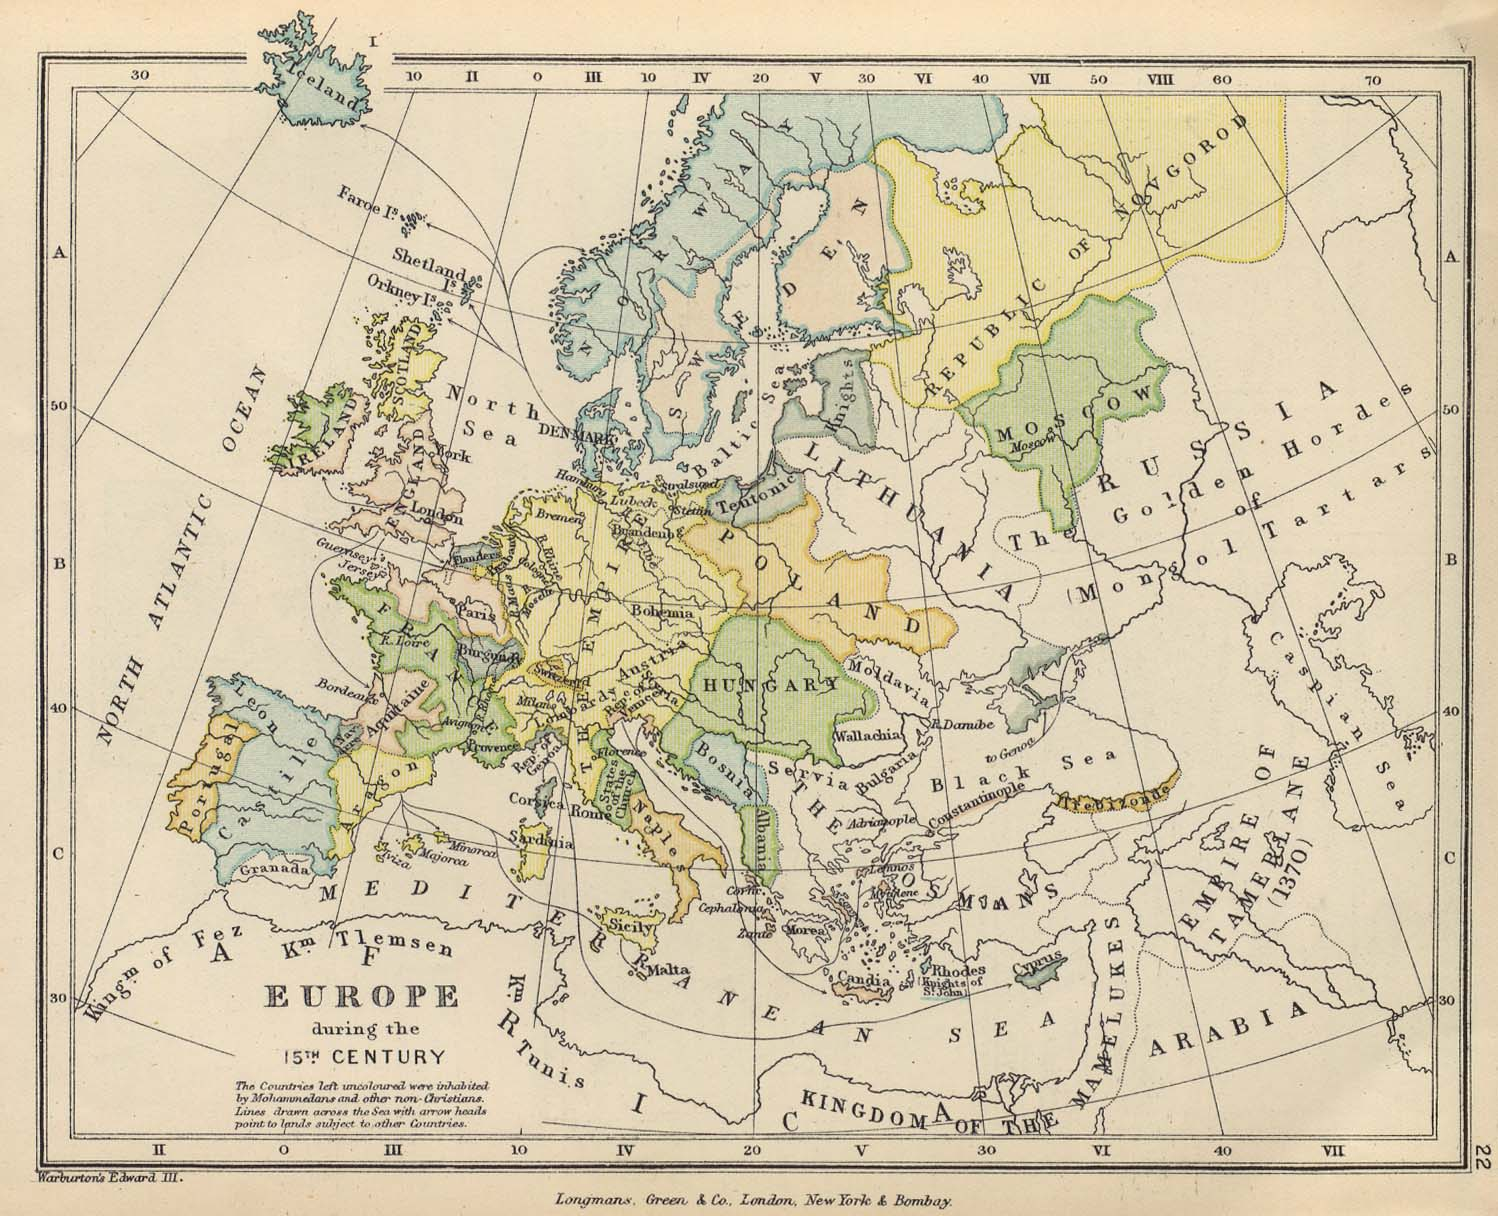 map 21 europe in the 15th century